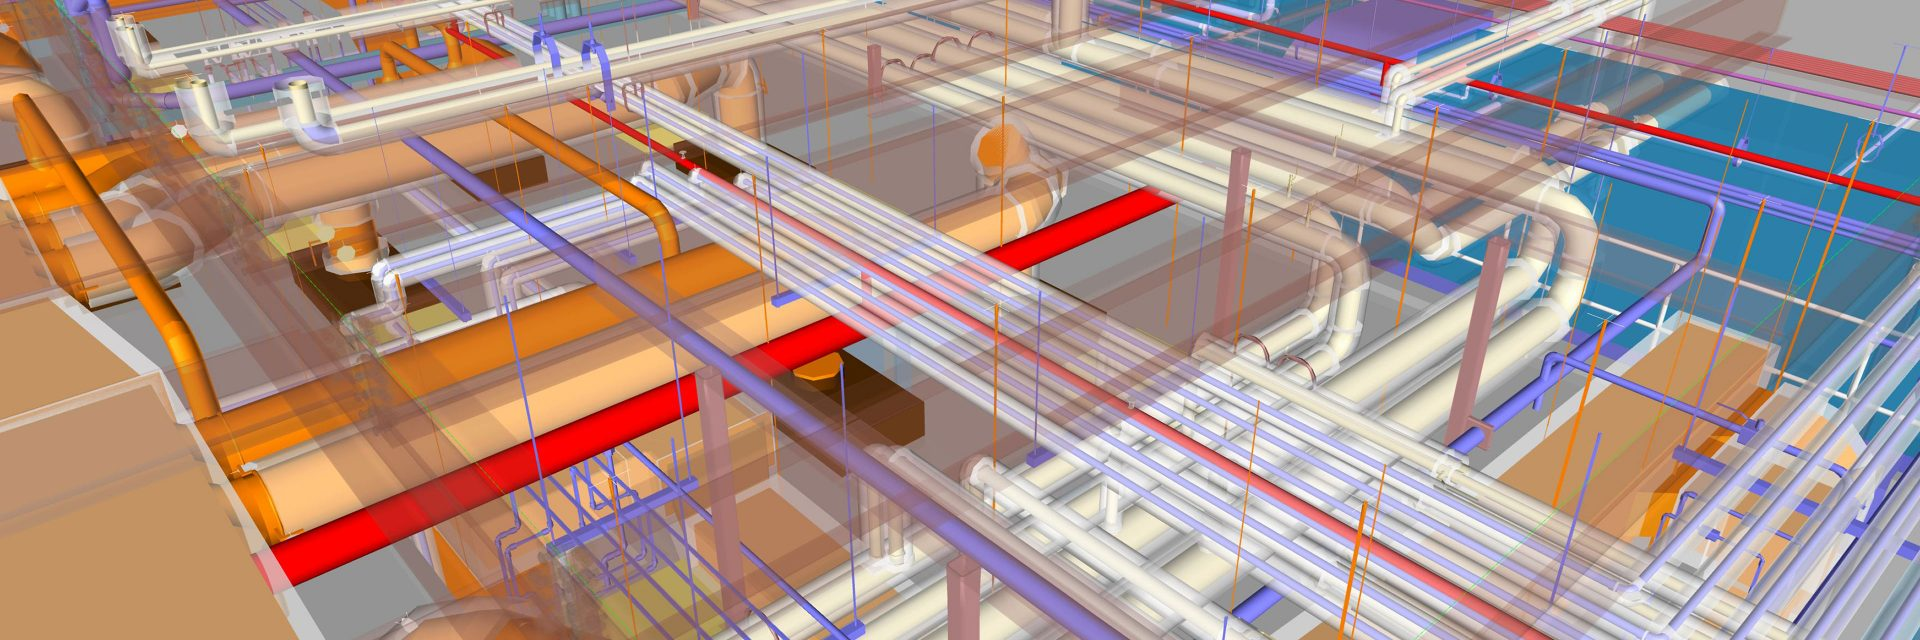 A Practical Approach to BIM/VDC - Workflow